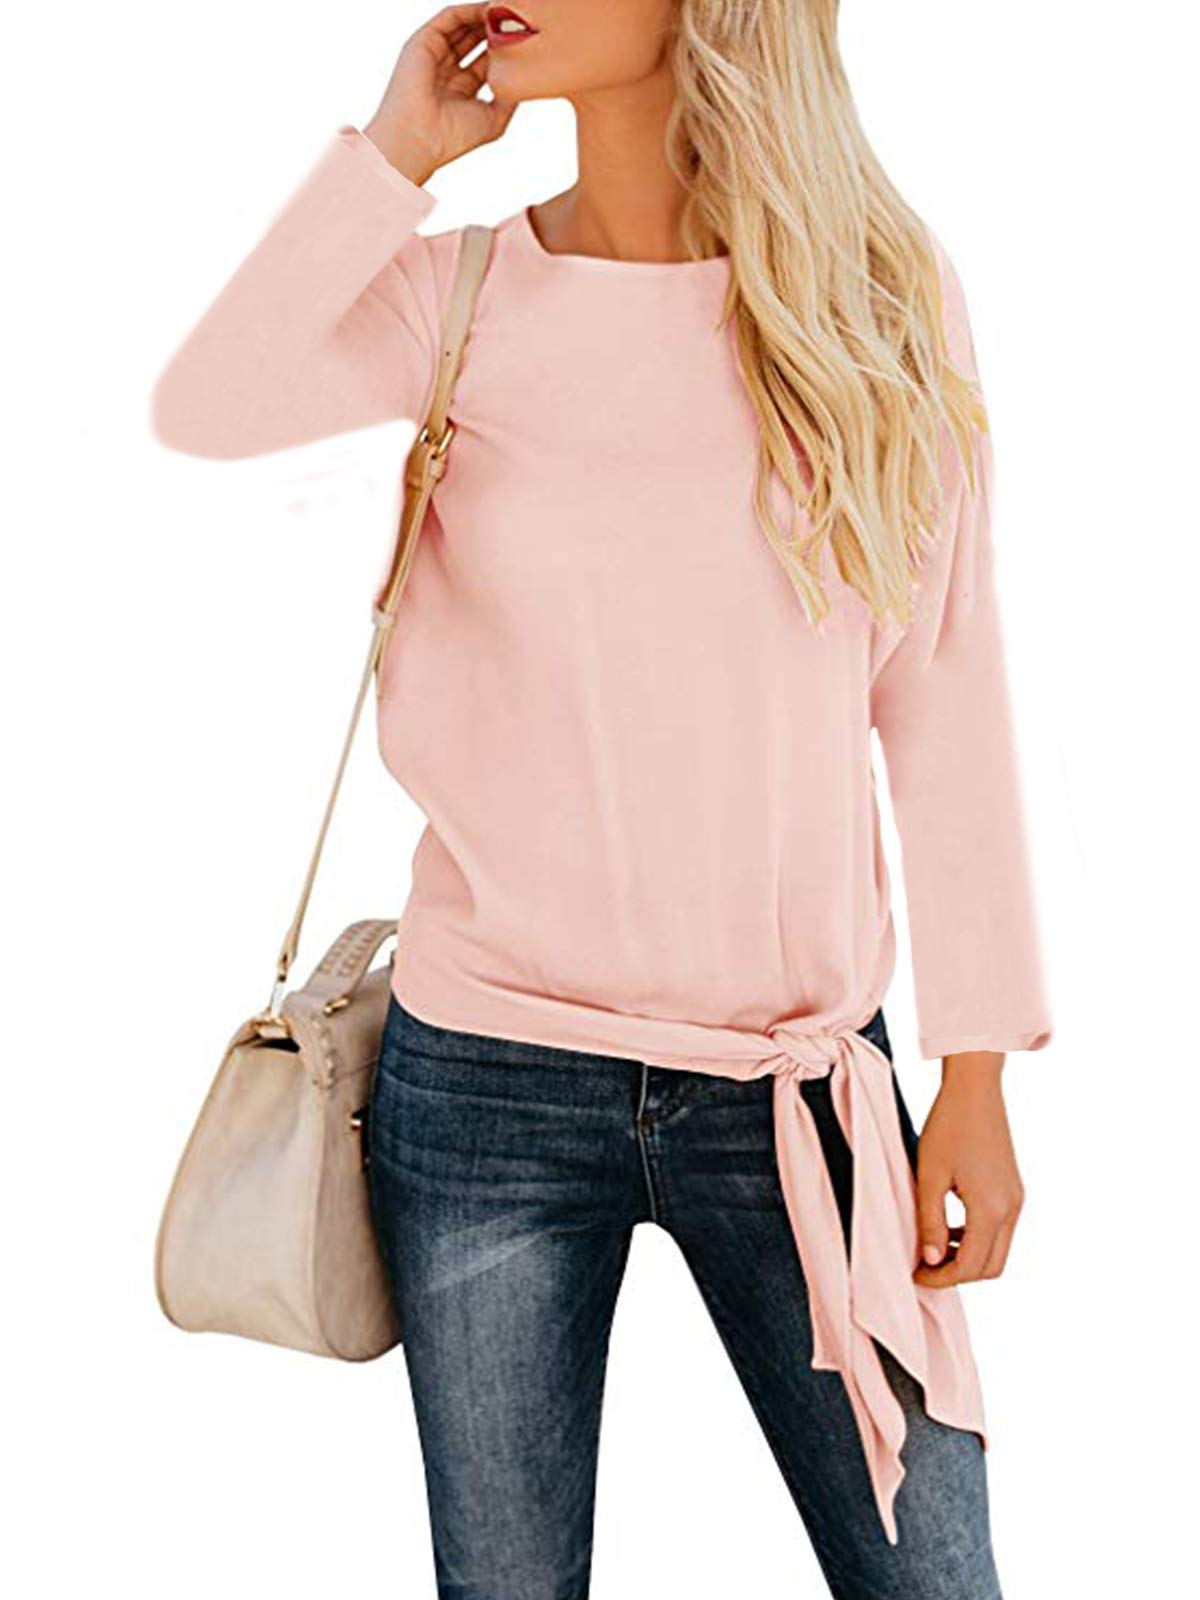 VYNCS Women's Casual O Neck Tie Knot Front Blouse Solid Loose Fit Long Sleeve Tee Top T-Shirt Blouses (Pink, Medium)